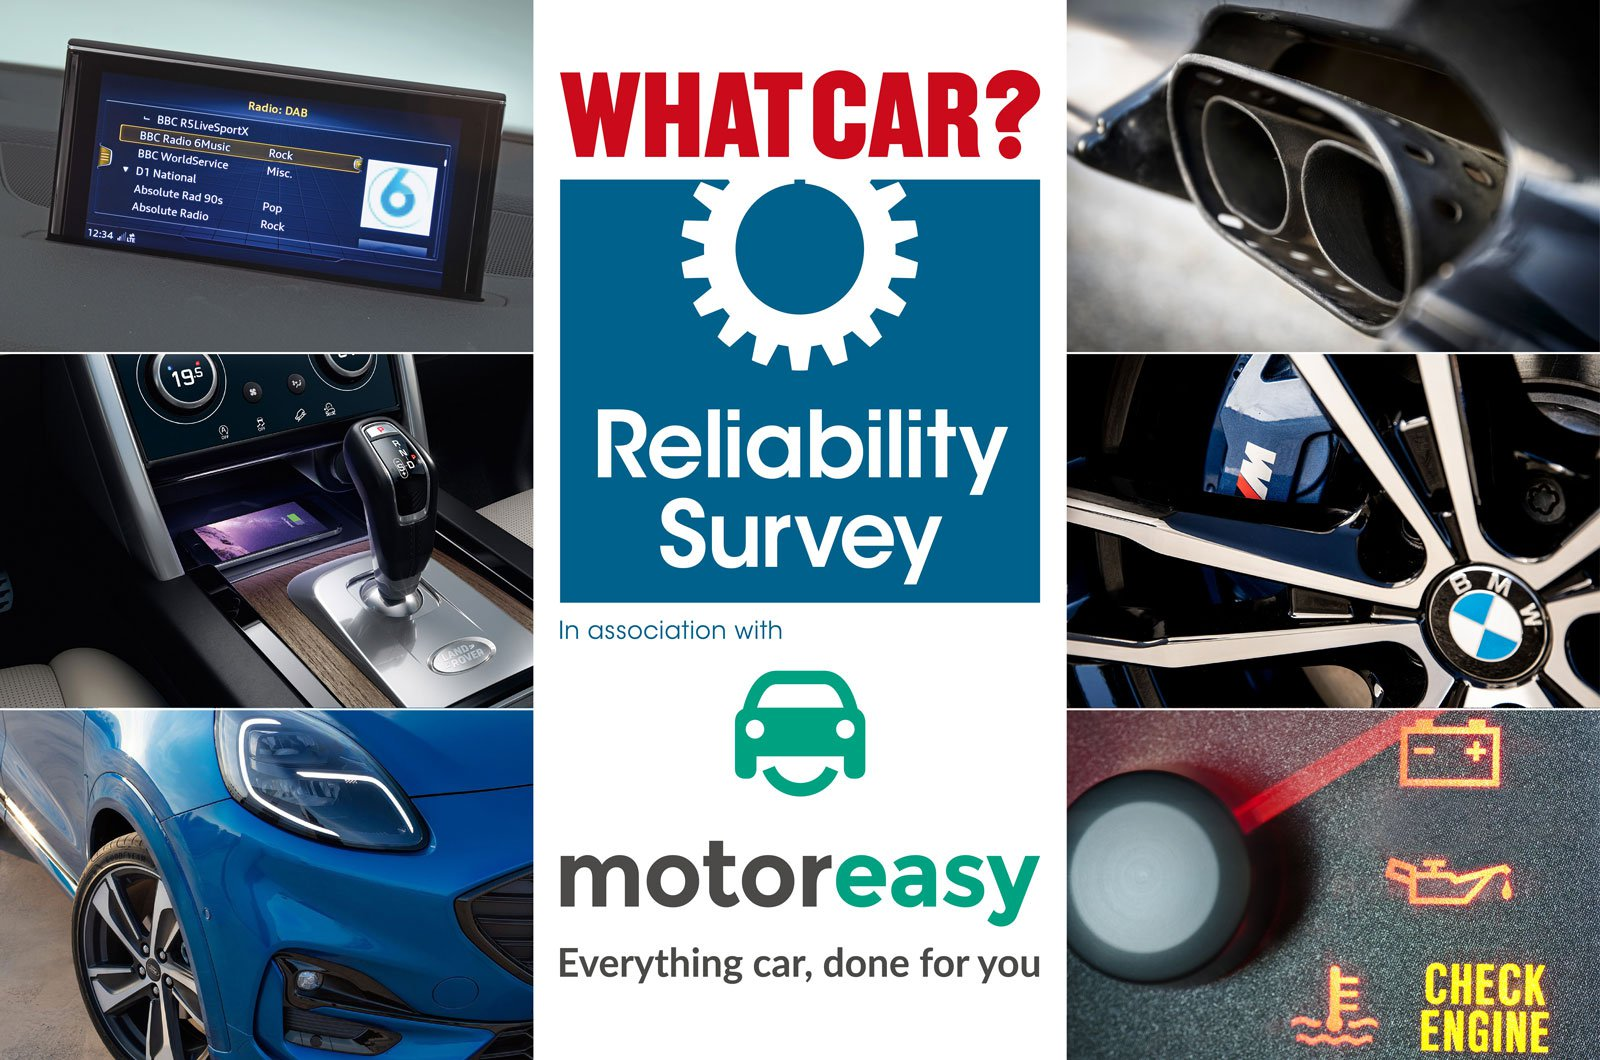 Reliability survey